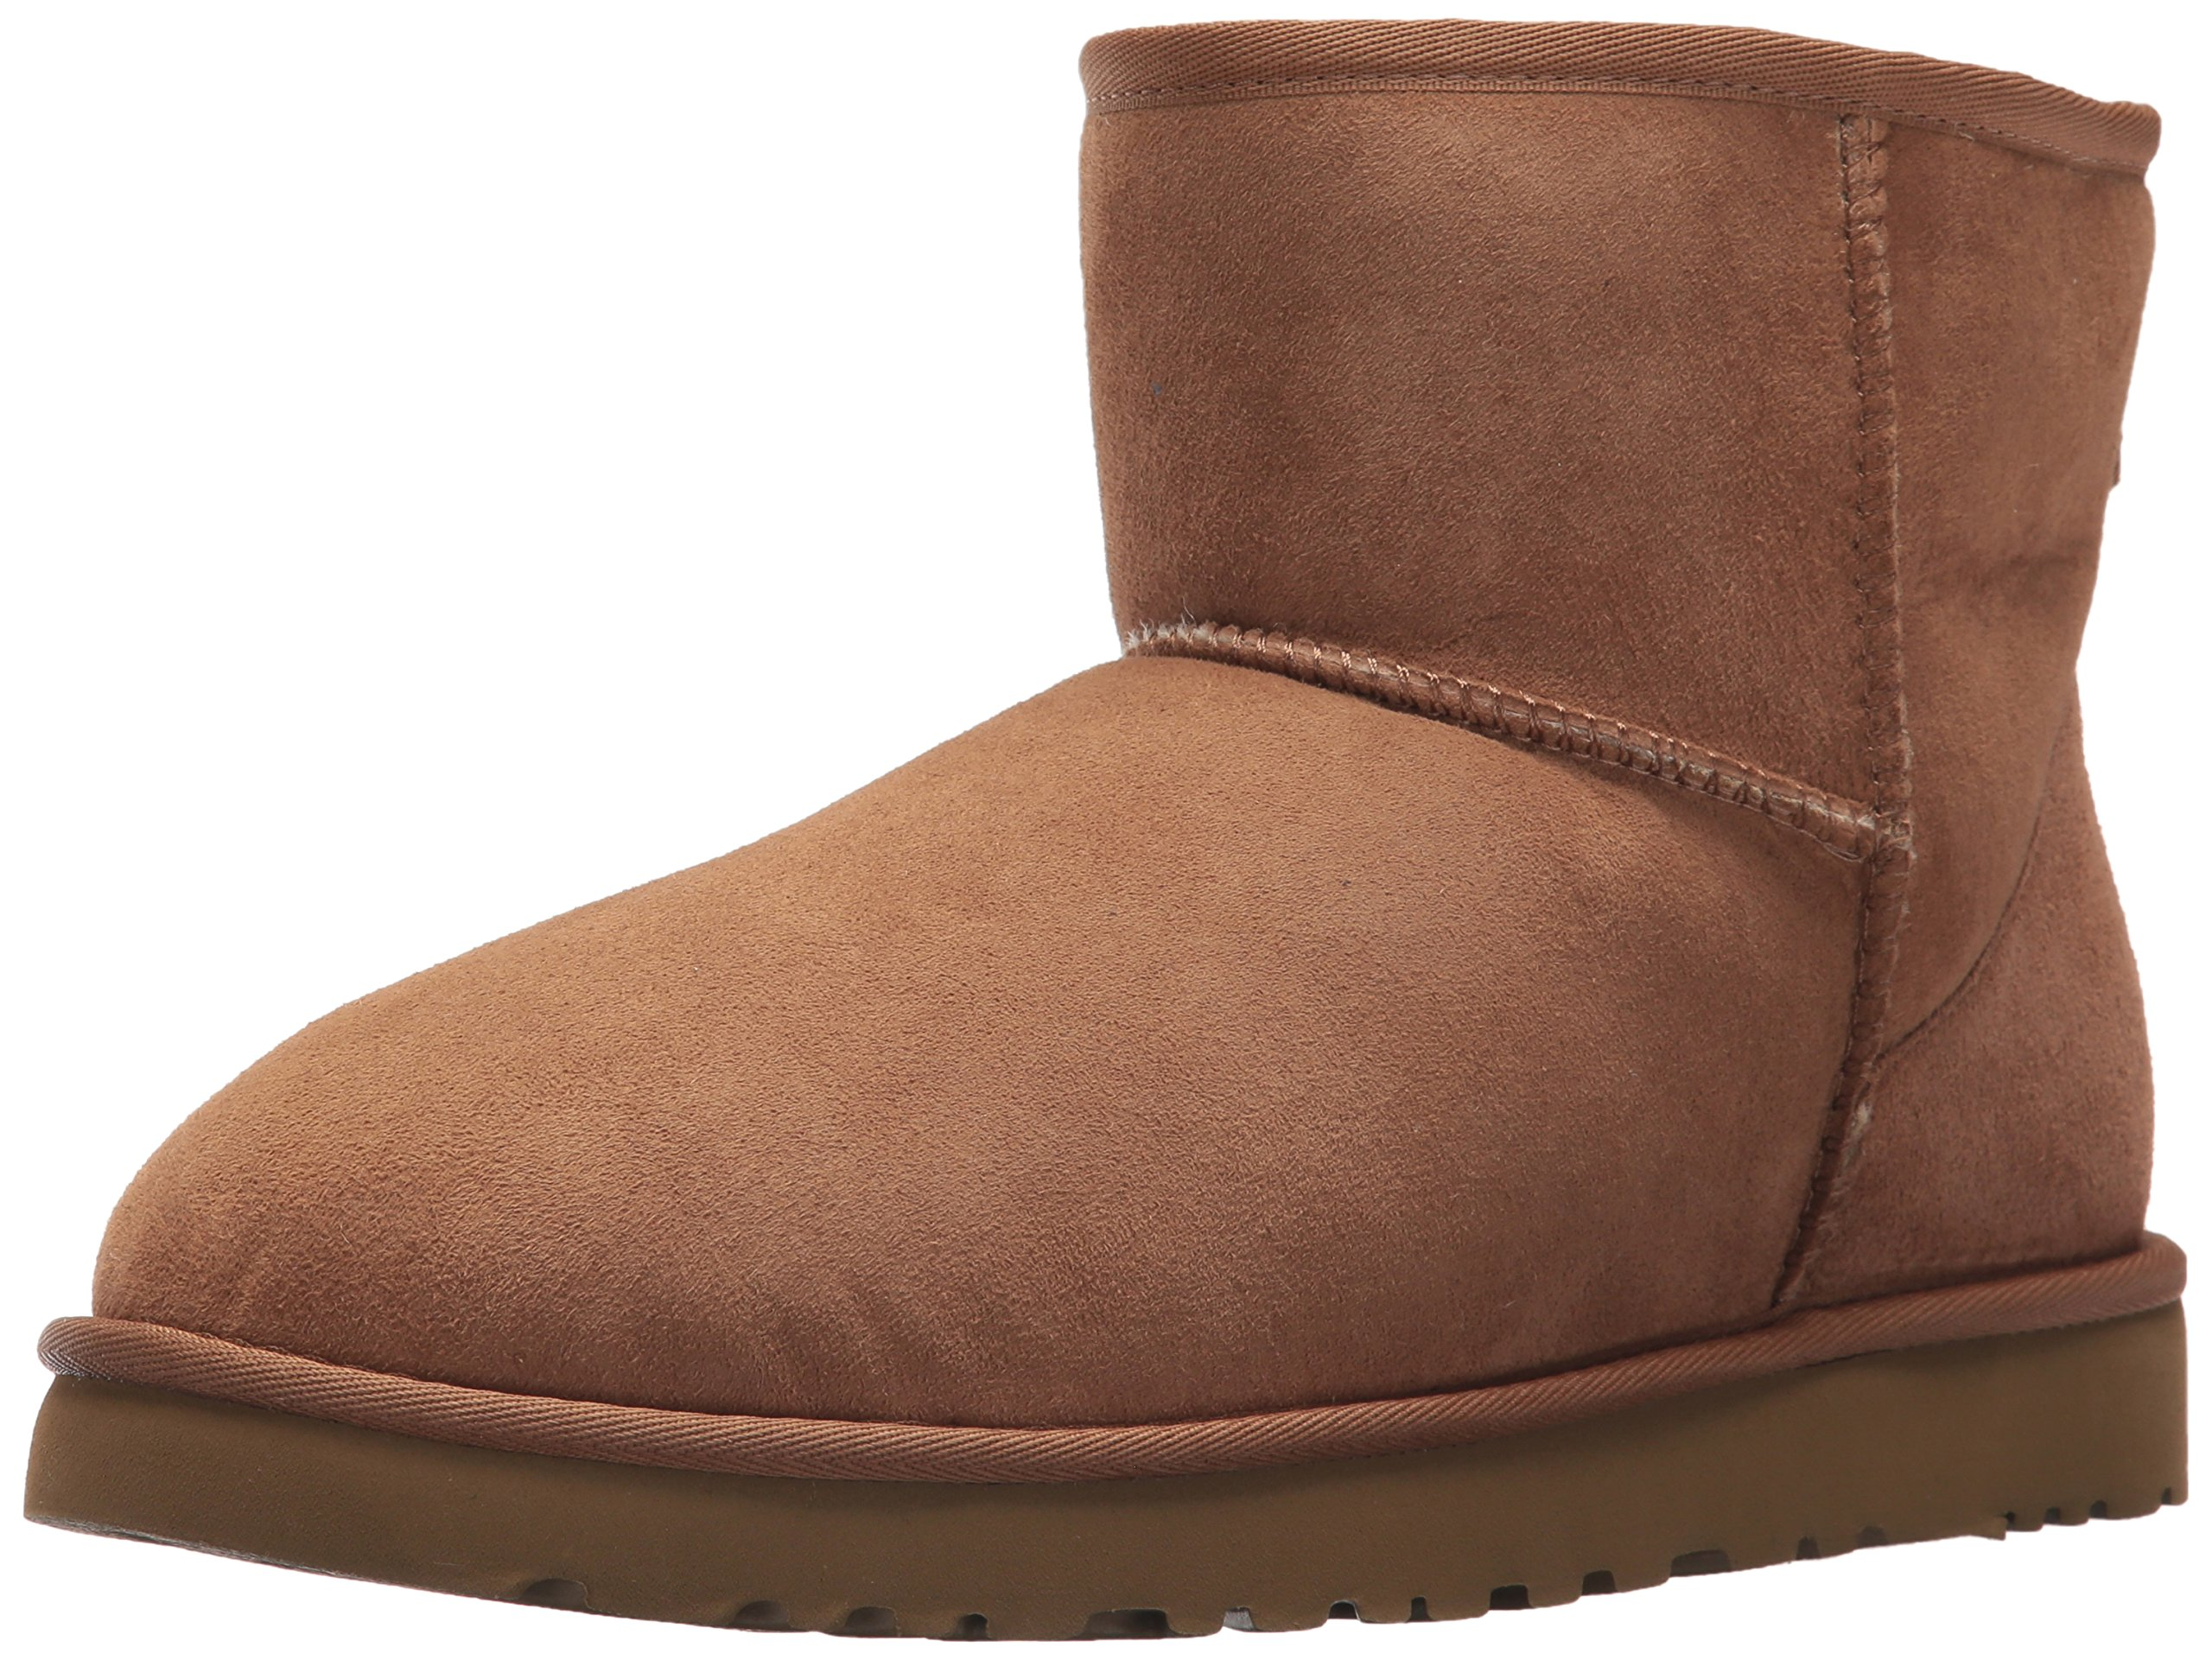 UGG Men's Classic Mini Winter Boot, Chestnut, 11 US/11 M US by UGG